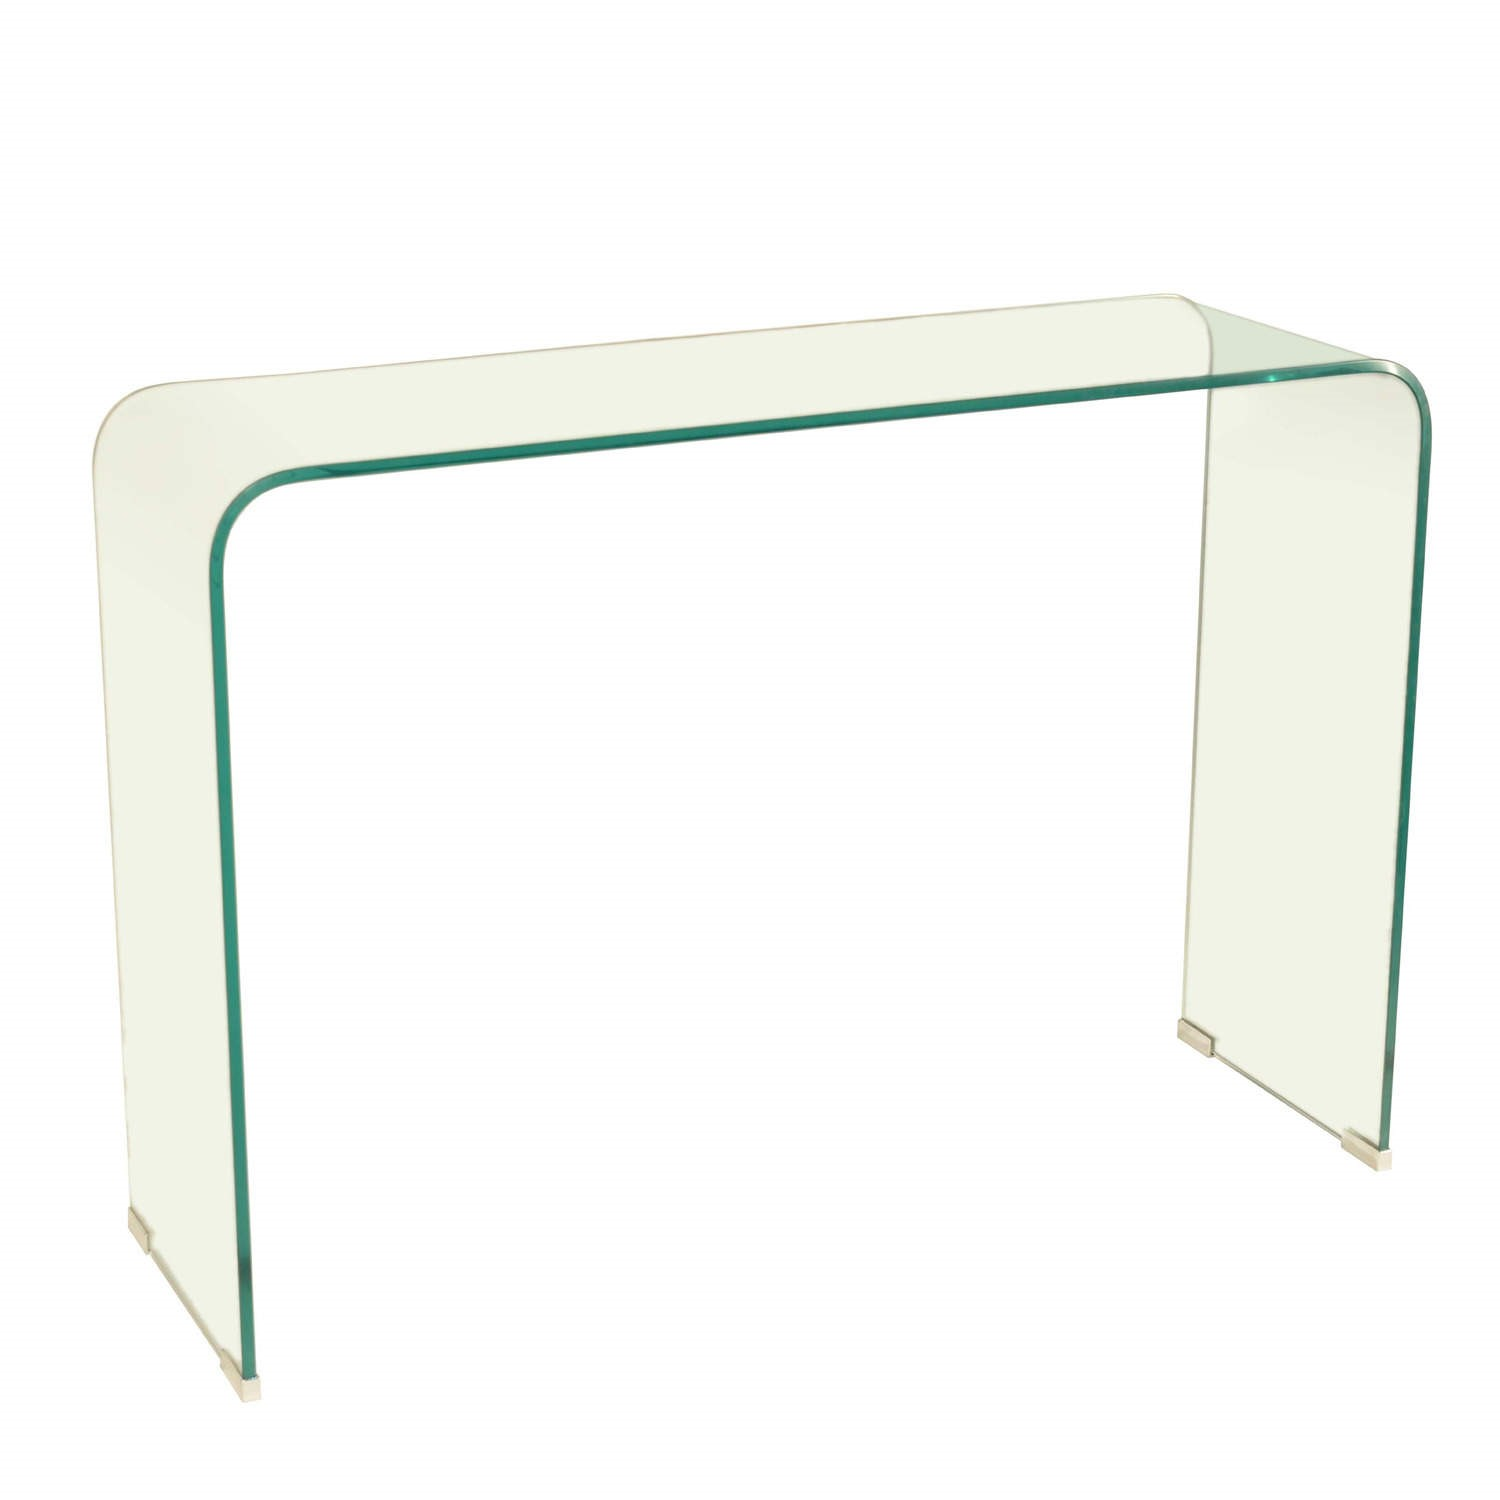 finest selection 53e83 9338f Azurro Curved Glass Console Table - LPD